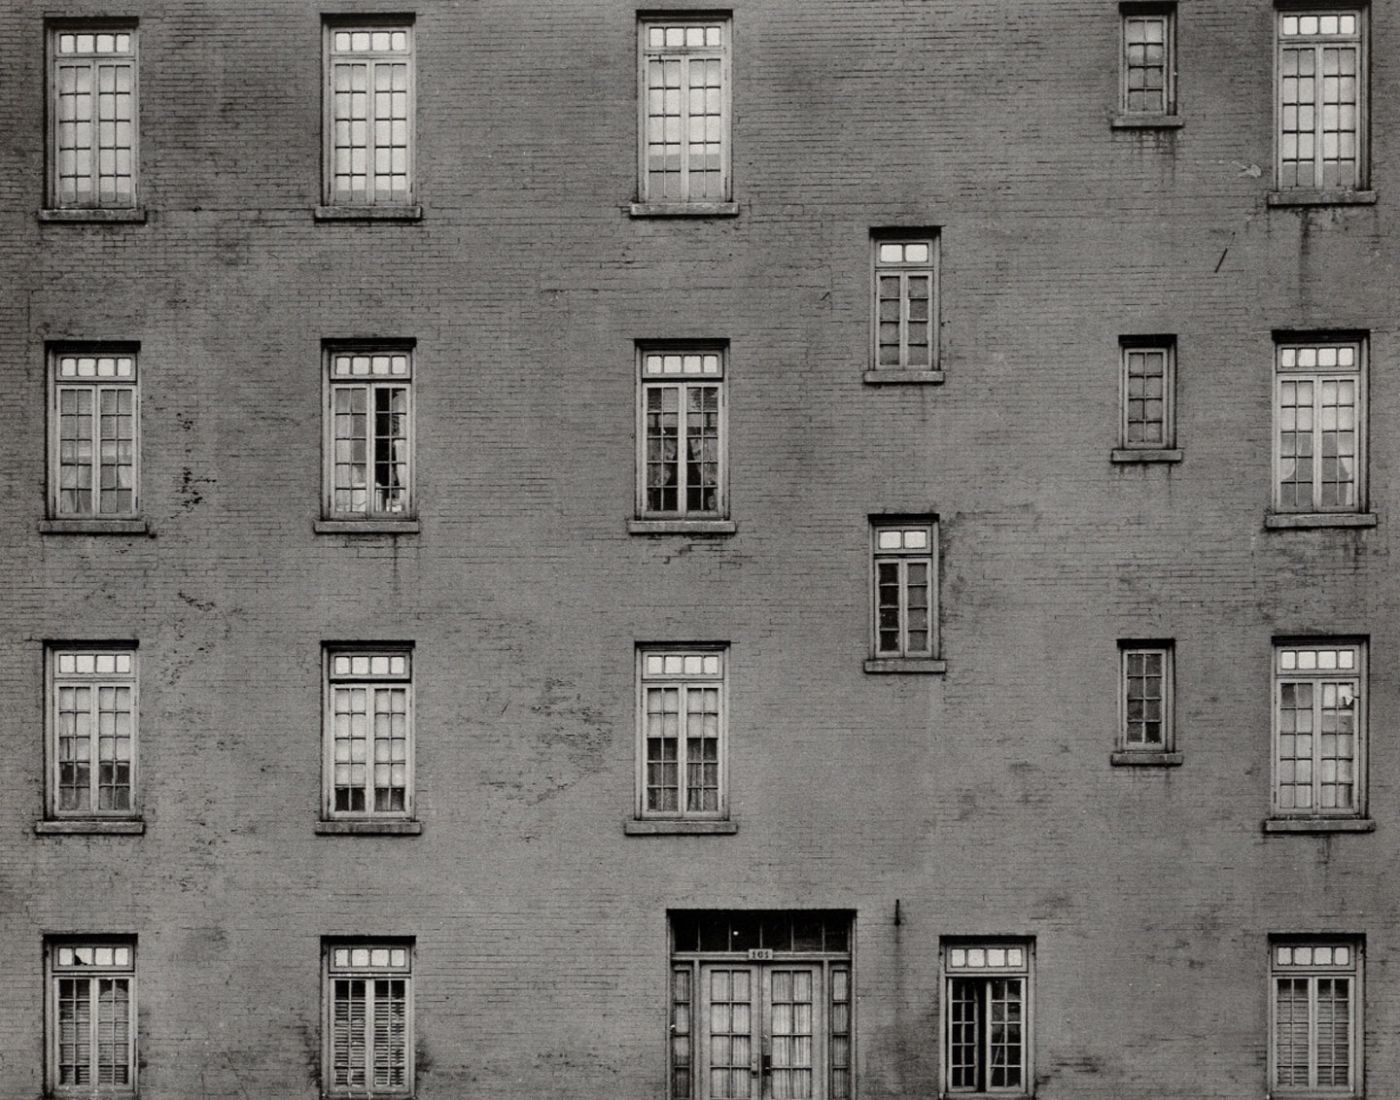 Harry Callahan: Photographs (El Mochuelo Gallery)